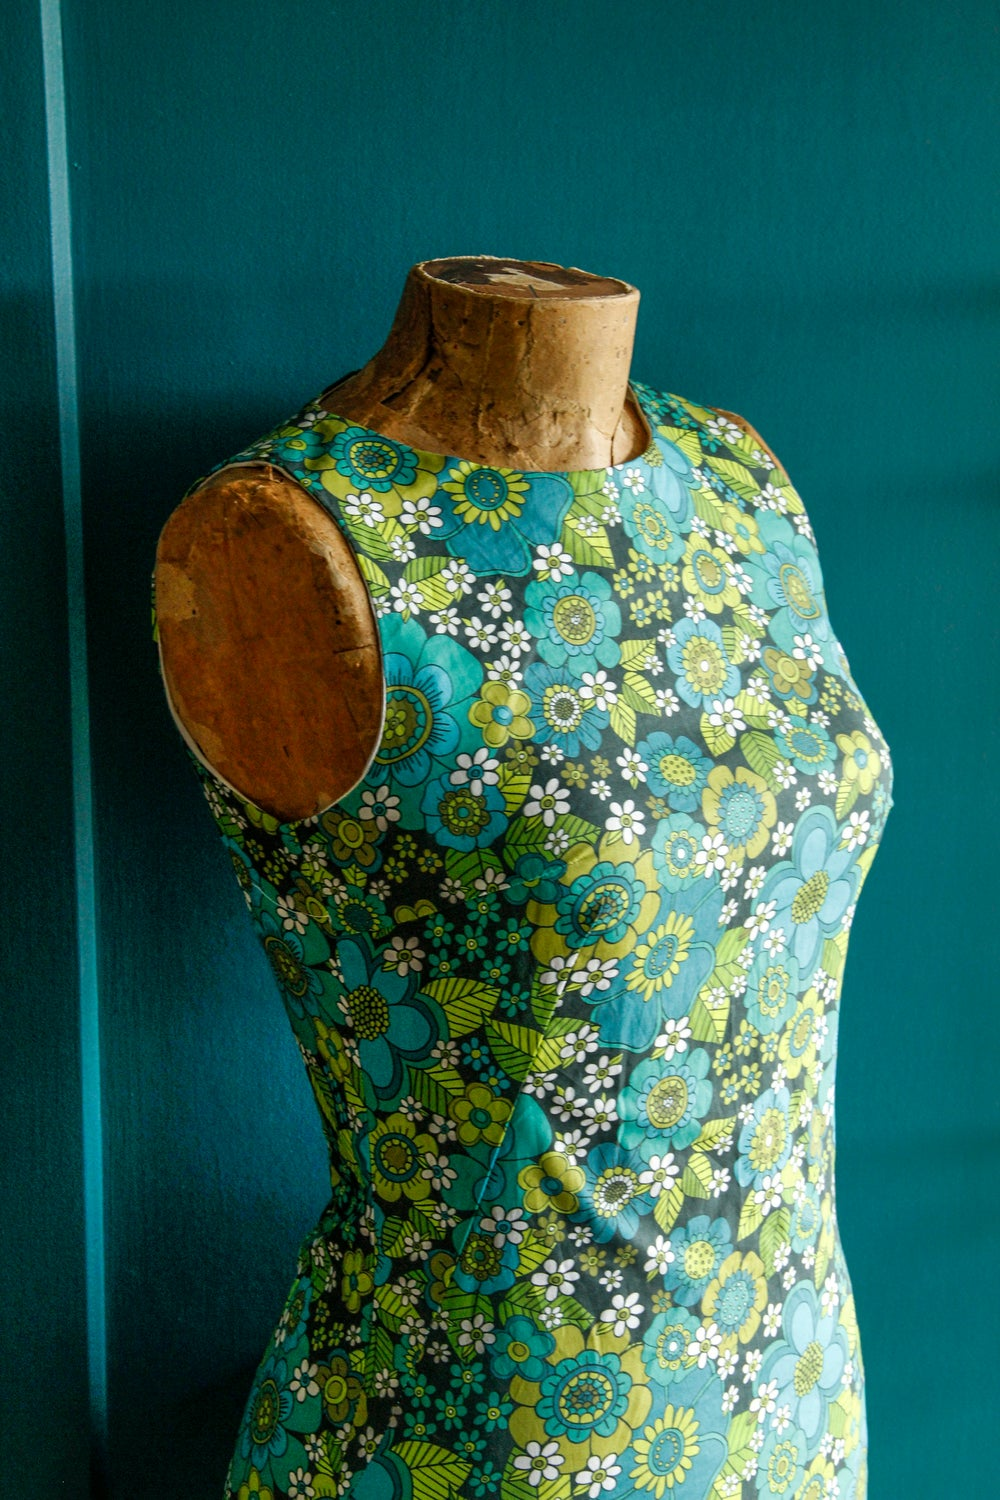 Tiki time shift in our Flower power print in Blue/green